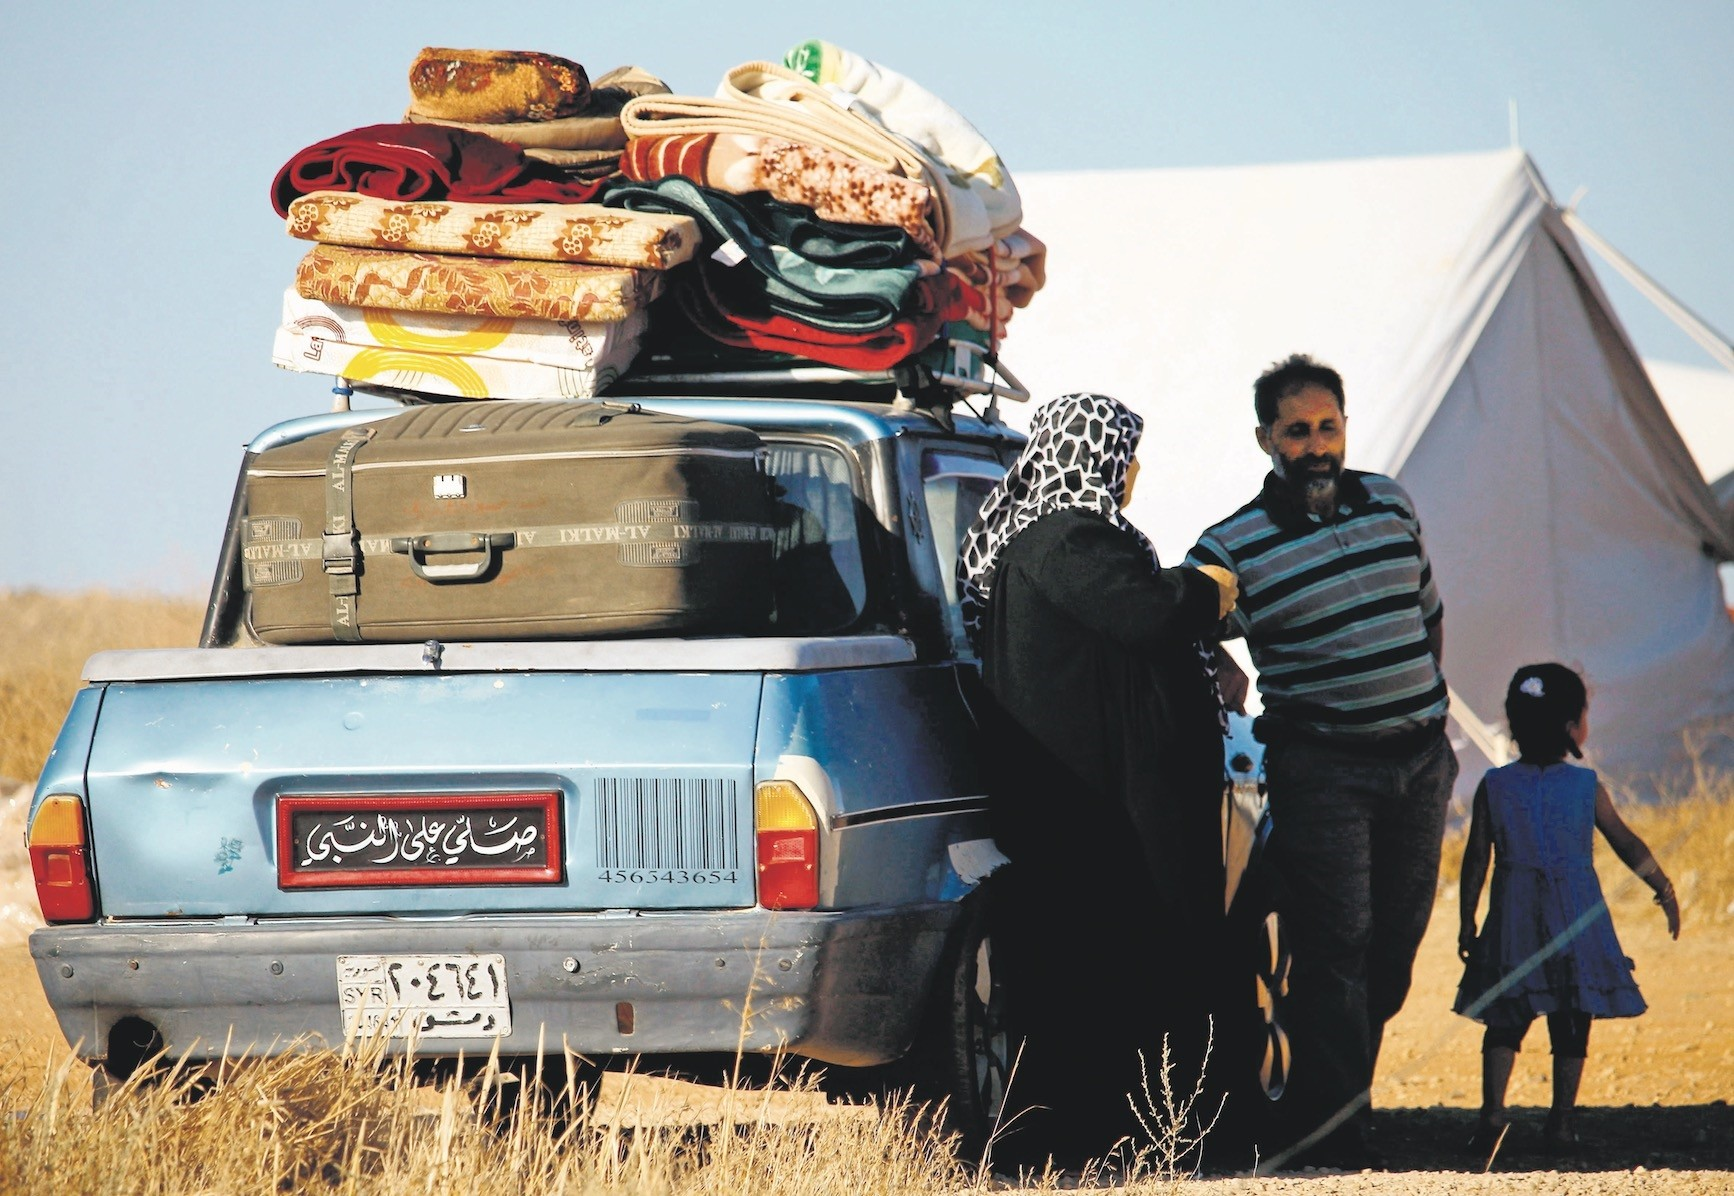 Displaced Syrians from Syriau2019s Daraa province fleeing shelling by pro-government forces wait in a makeshift camp to cross the Jordanian border.